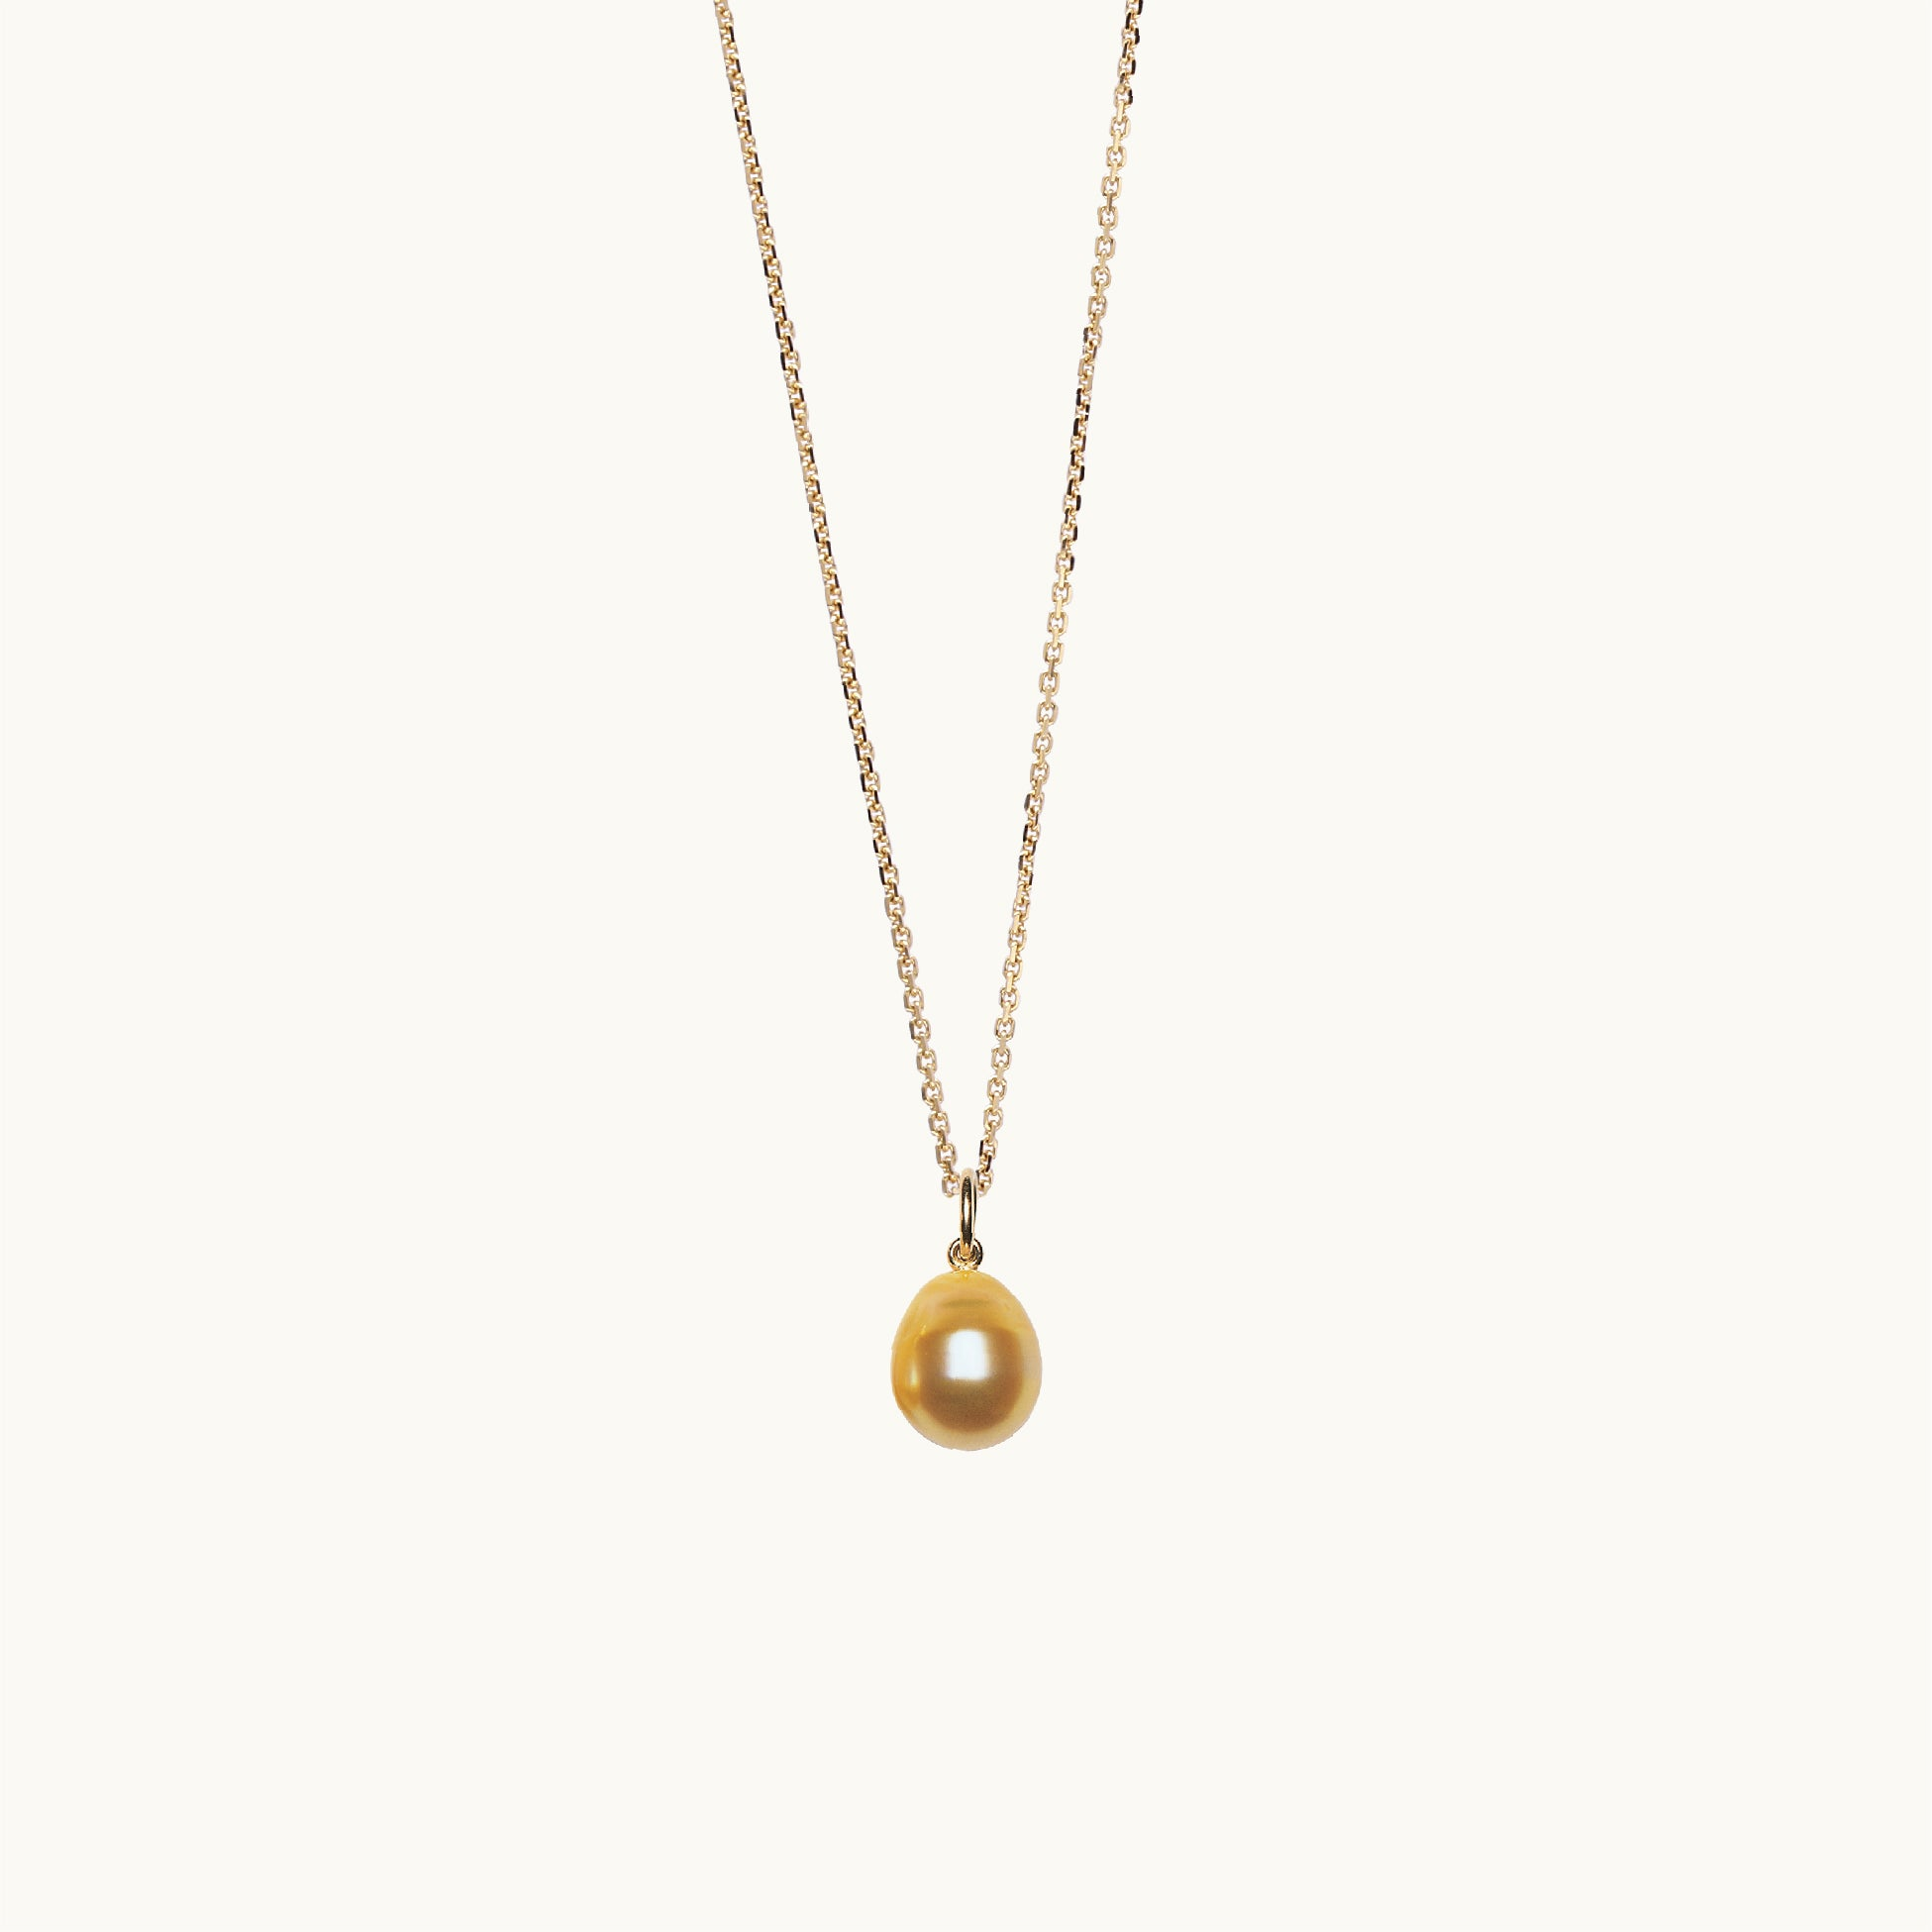 Golden Baroque Pearl Pendant 11.5mm